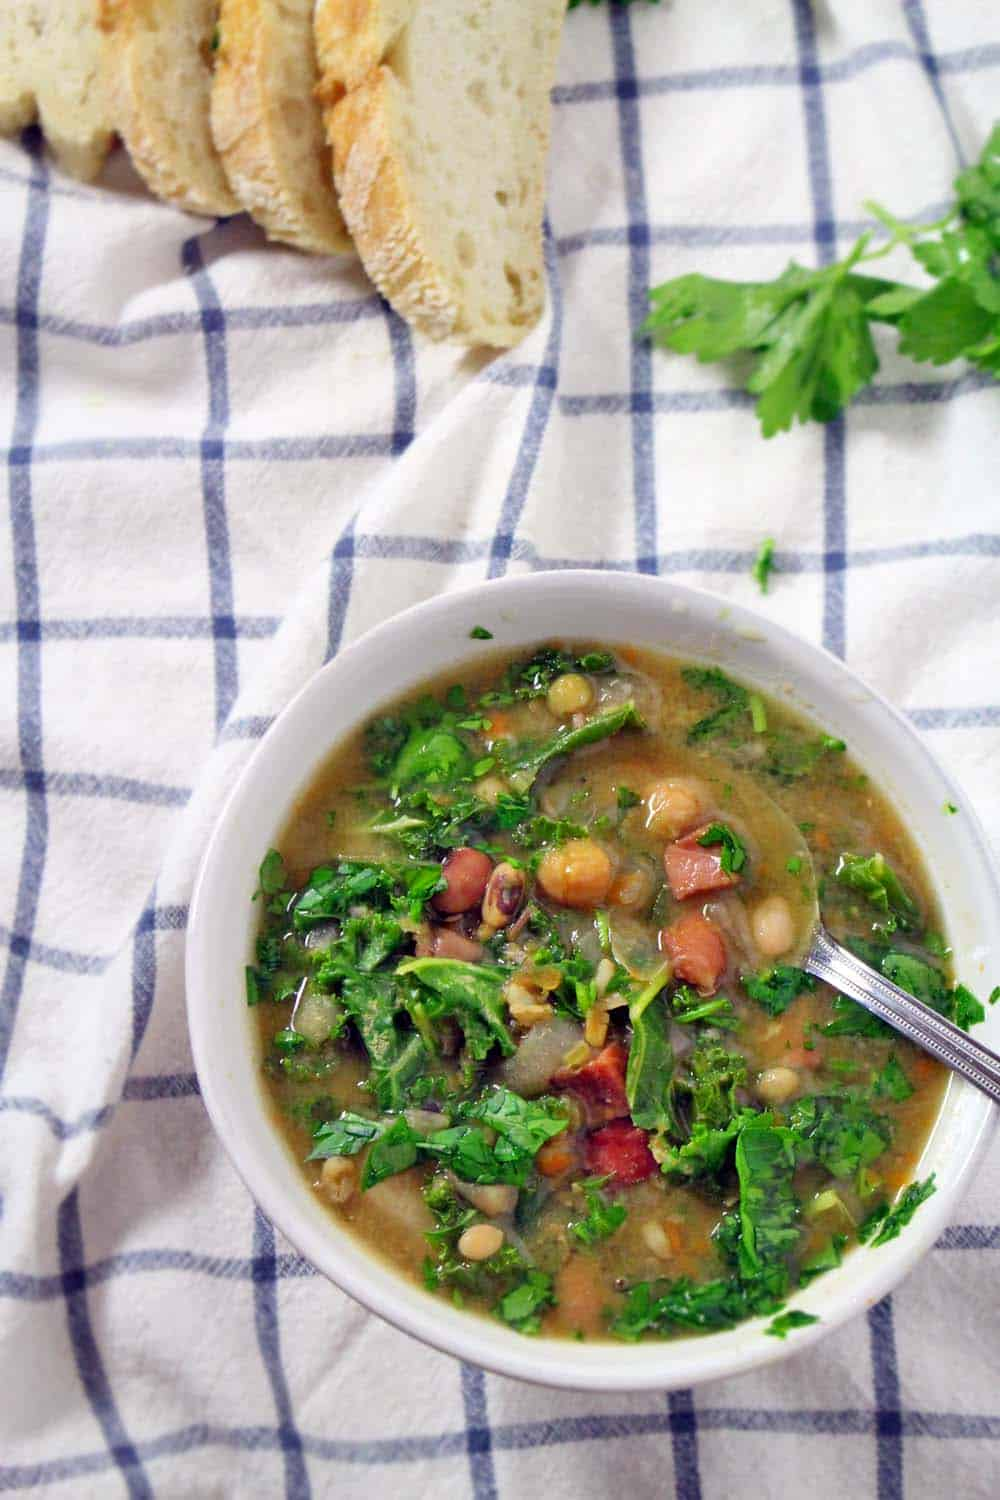 This 16 bean and kale soup is a nutrient-packed, easy, hearty, and delicious meal! Slow cooking makes it super easy. Freeze the leftovers!